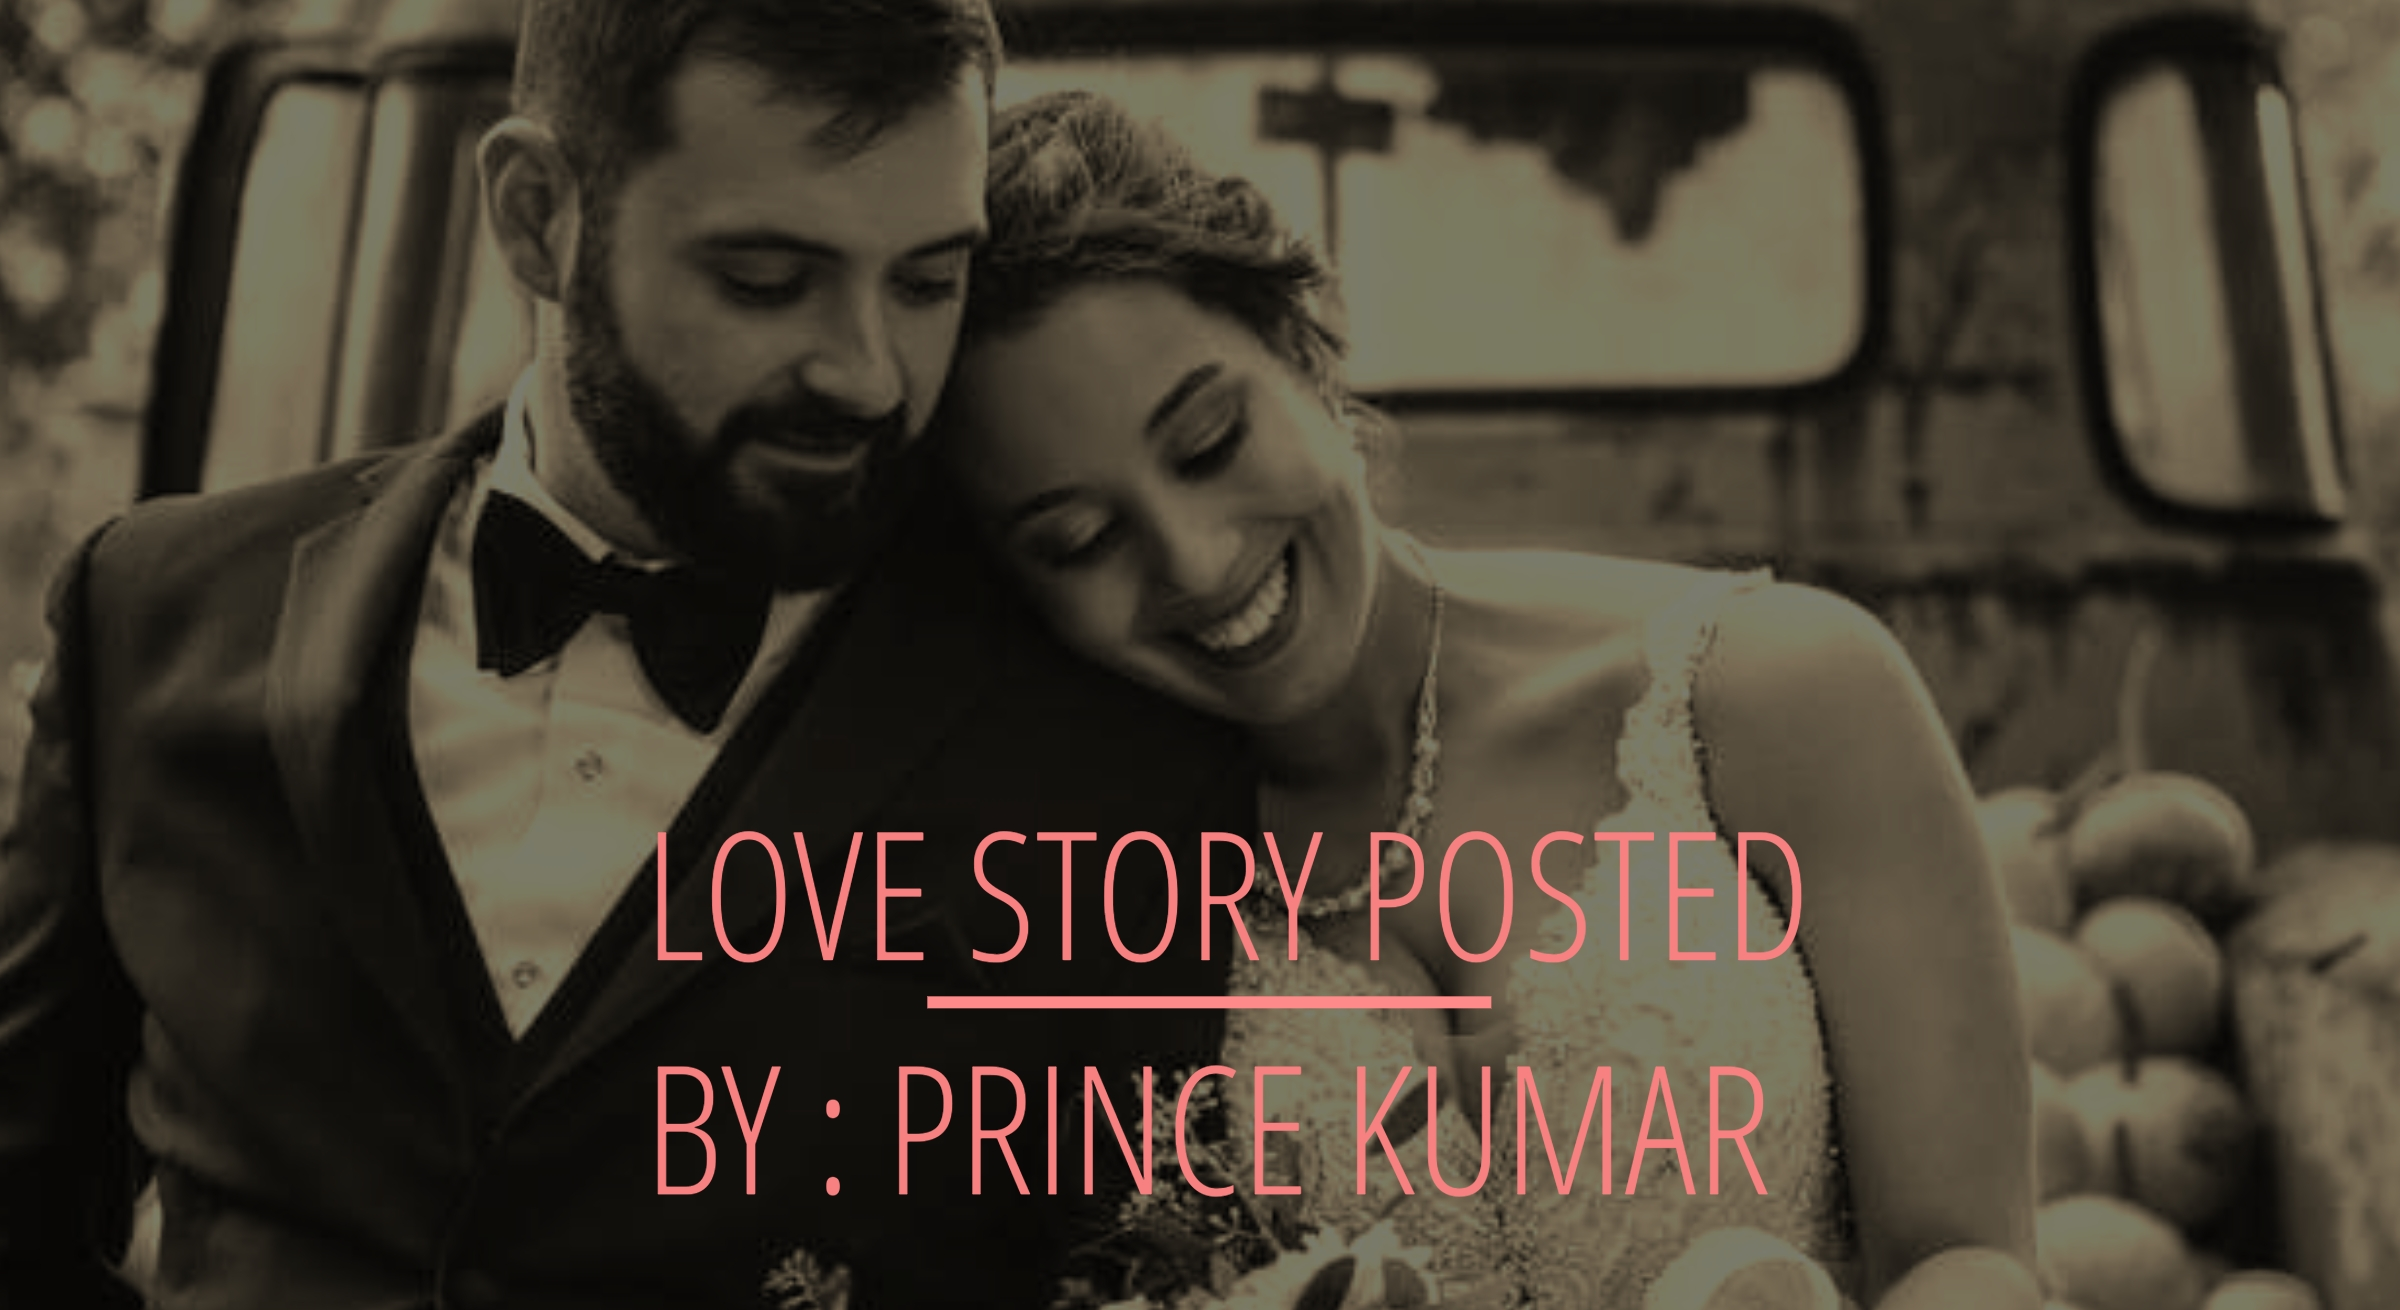 1. STORY POSTED BY PRINCE KUMAR